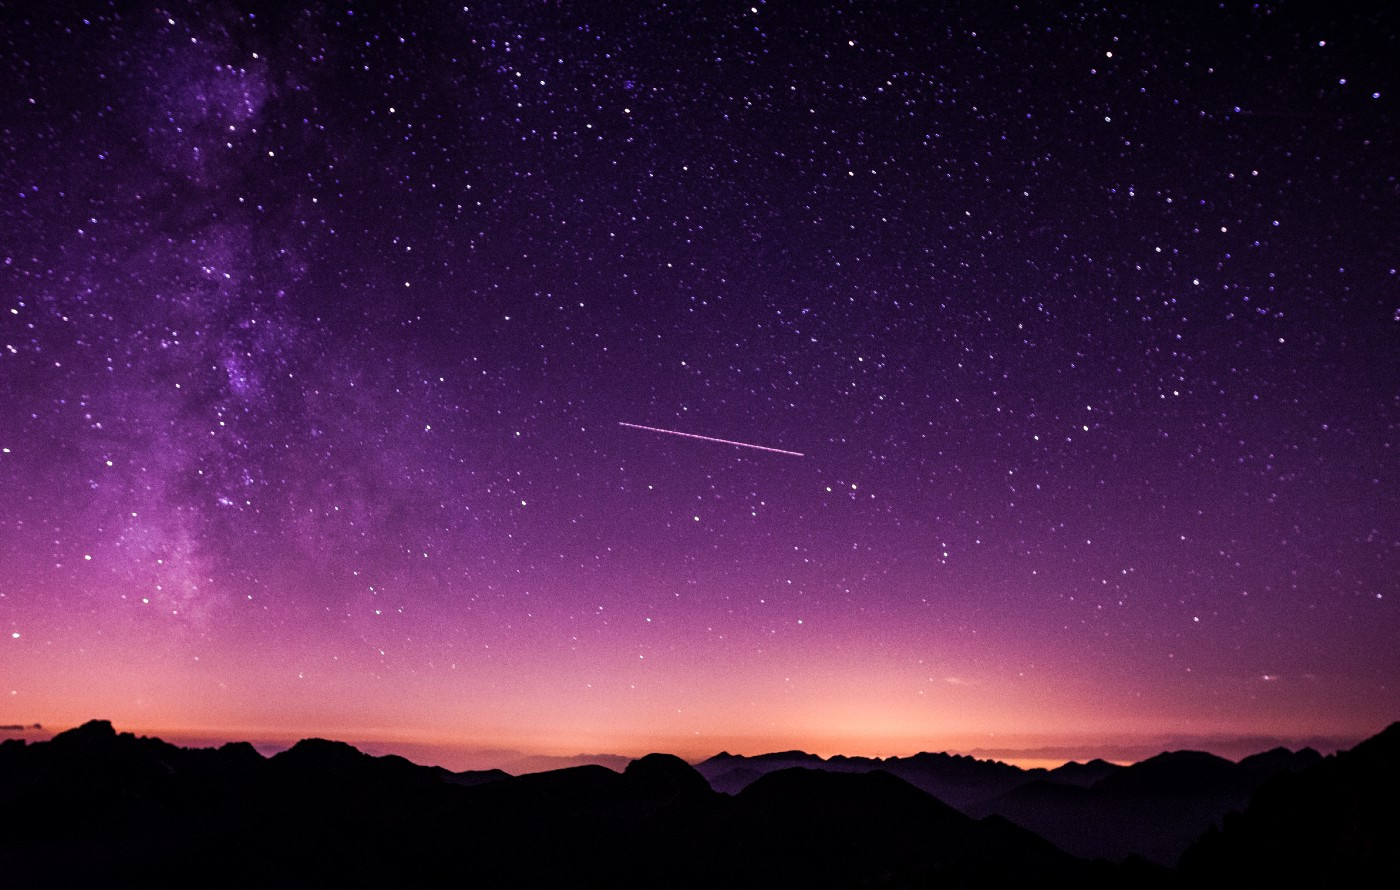 The night sky with stars and a shooting star